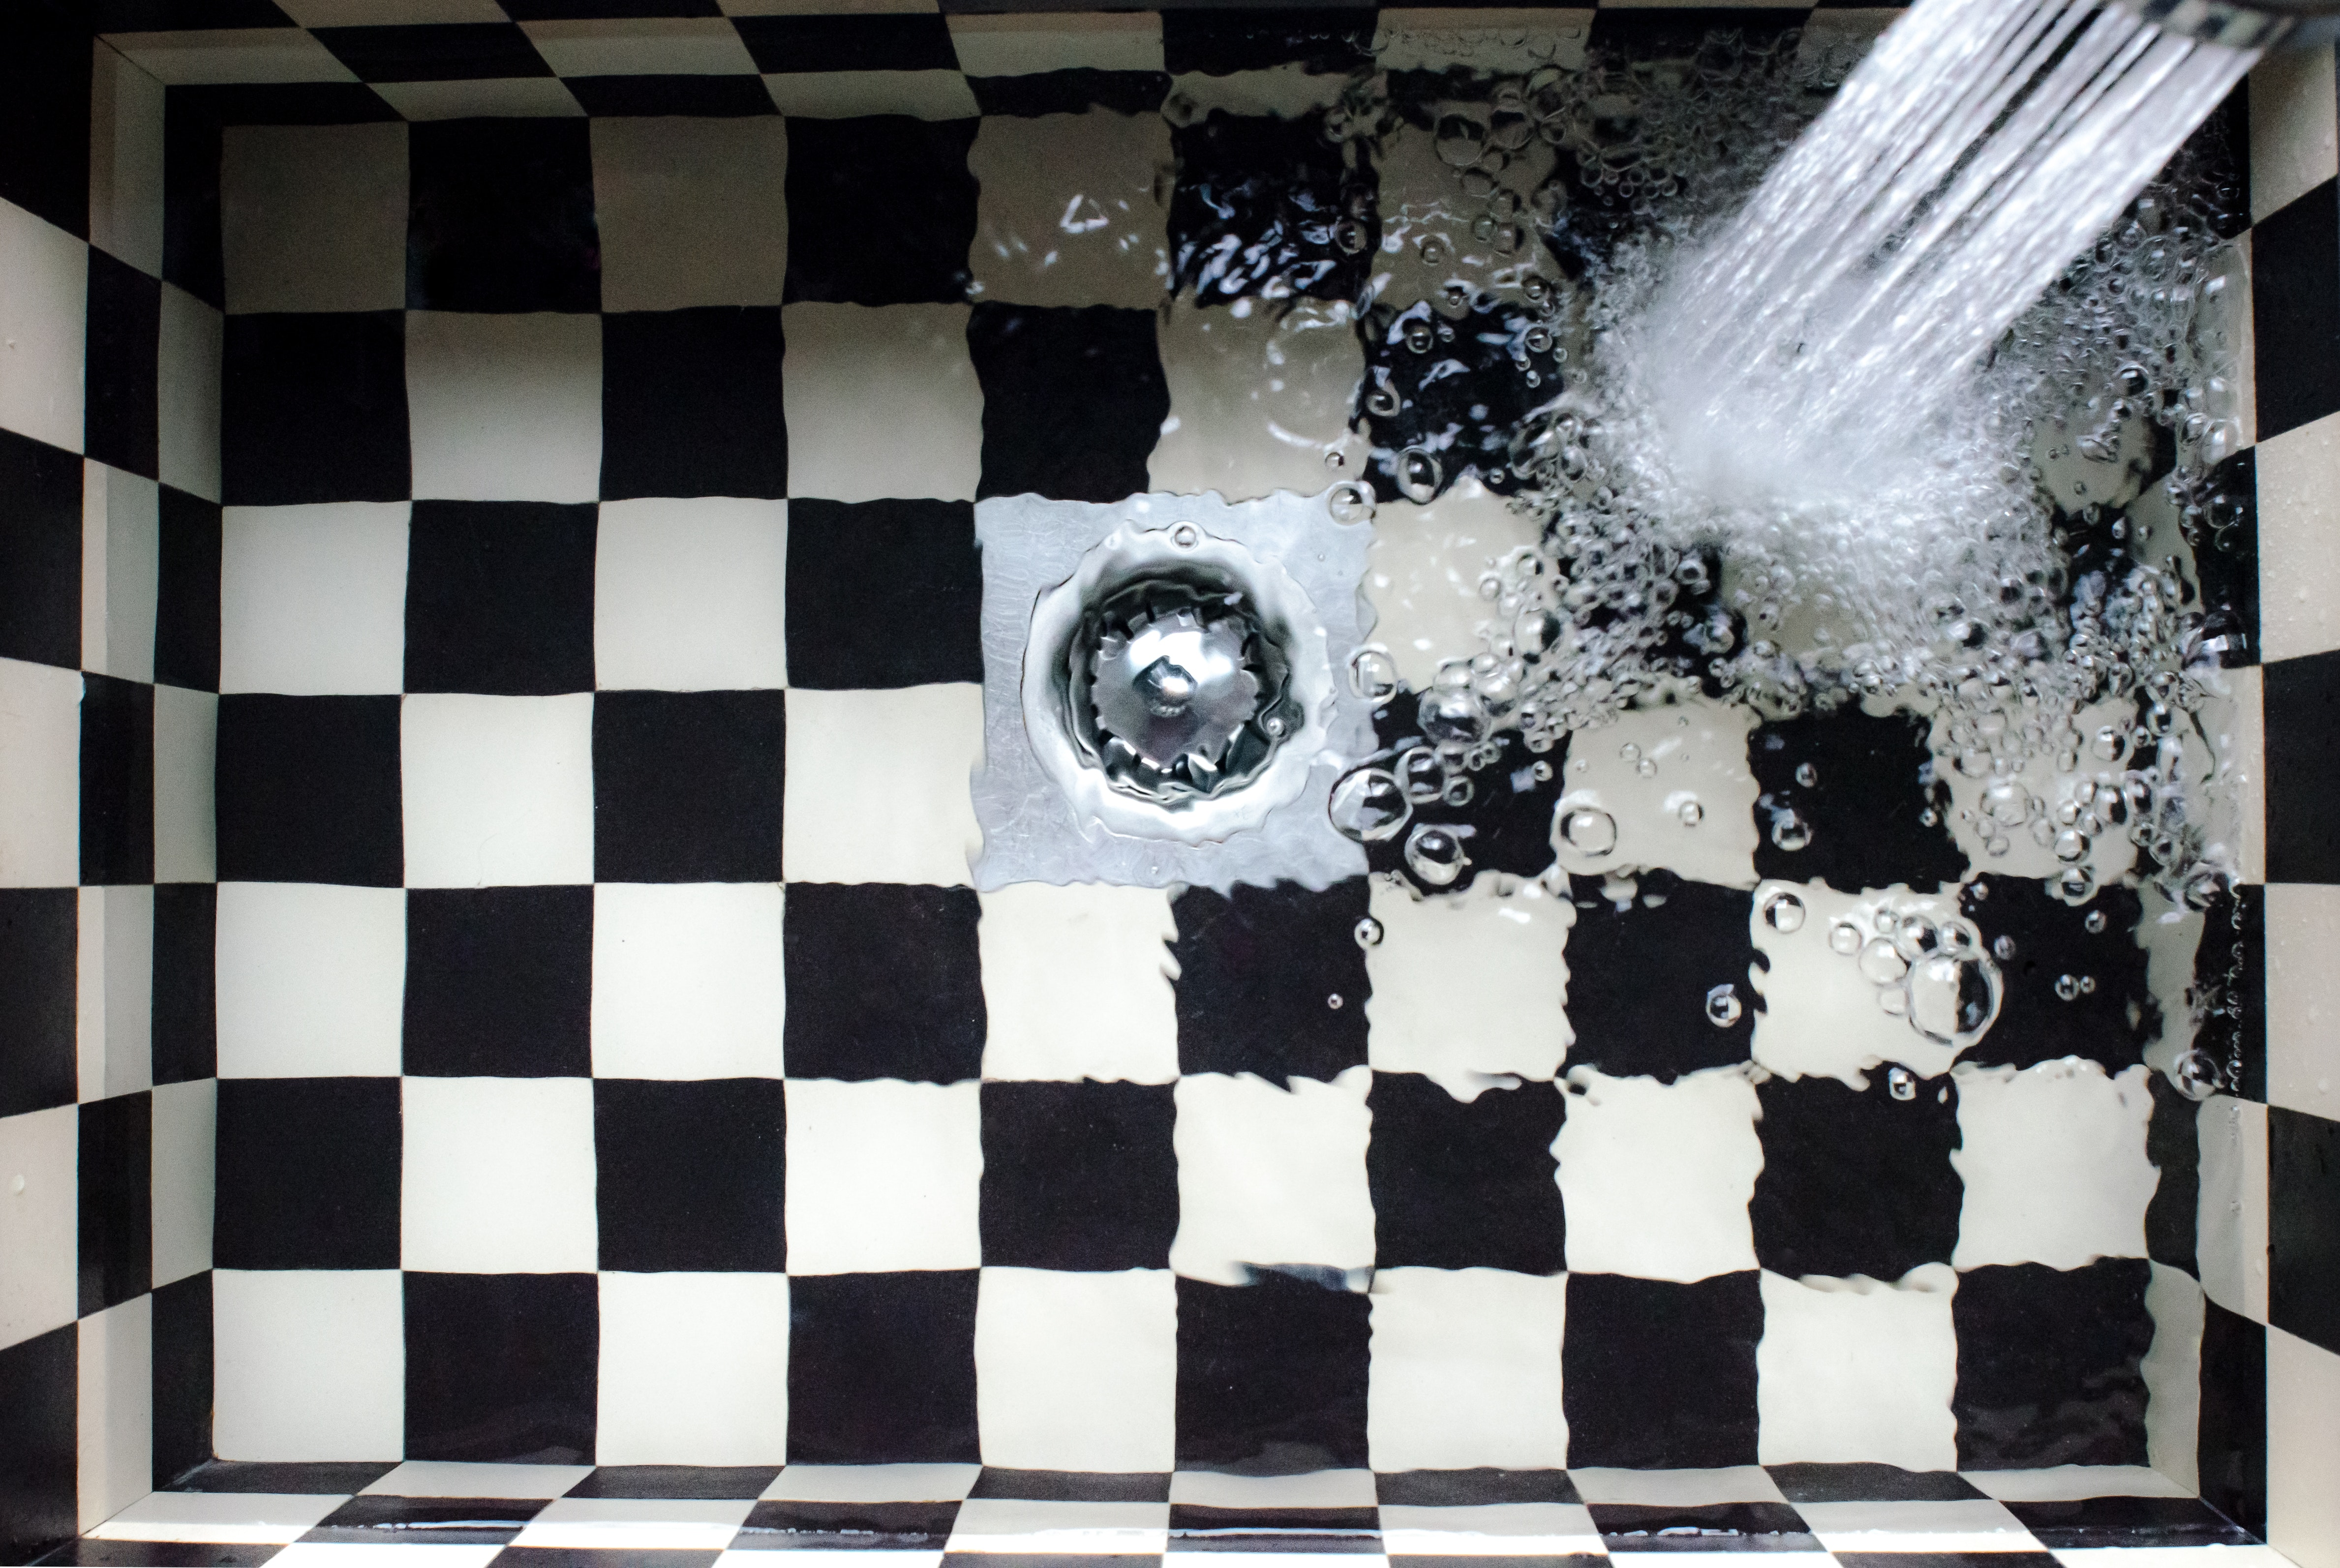 Some blocked drains require more than a DIY solution.